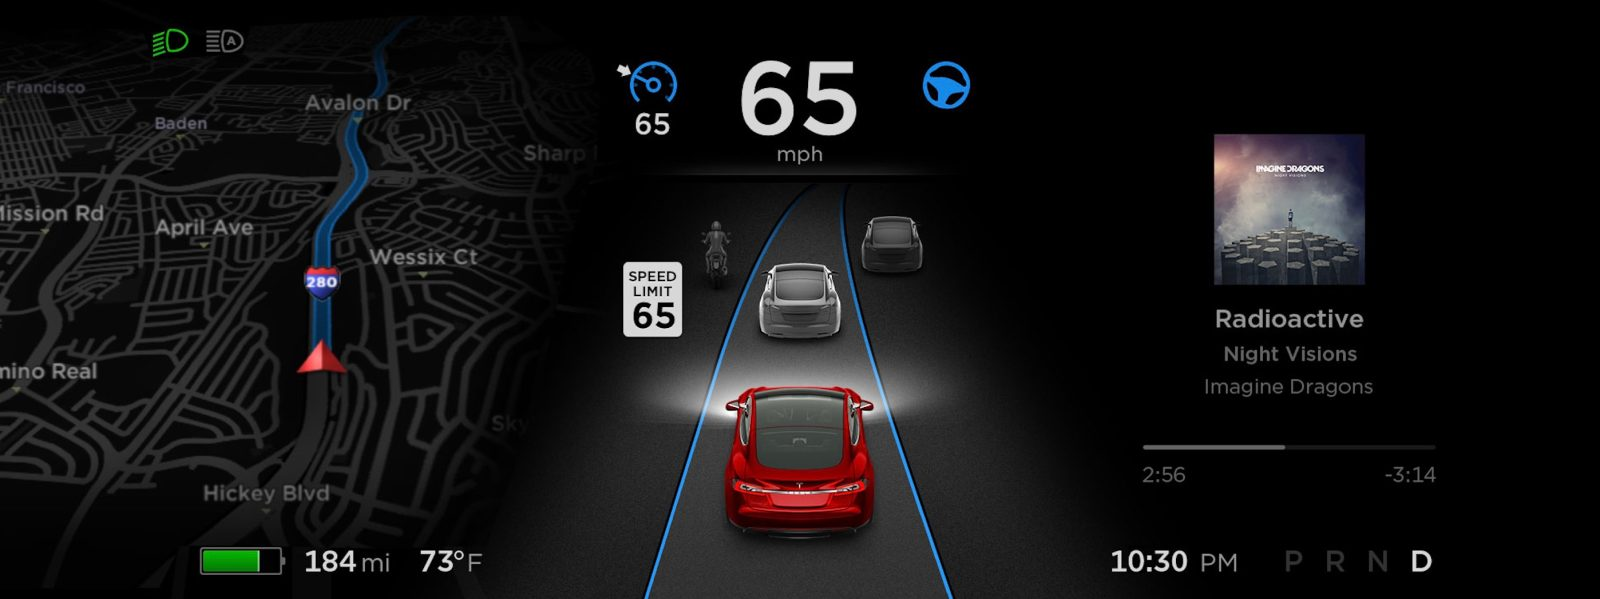 Tesla's version 9 software update is coming in August with